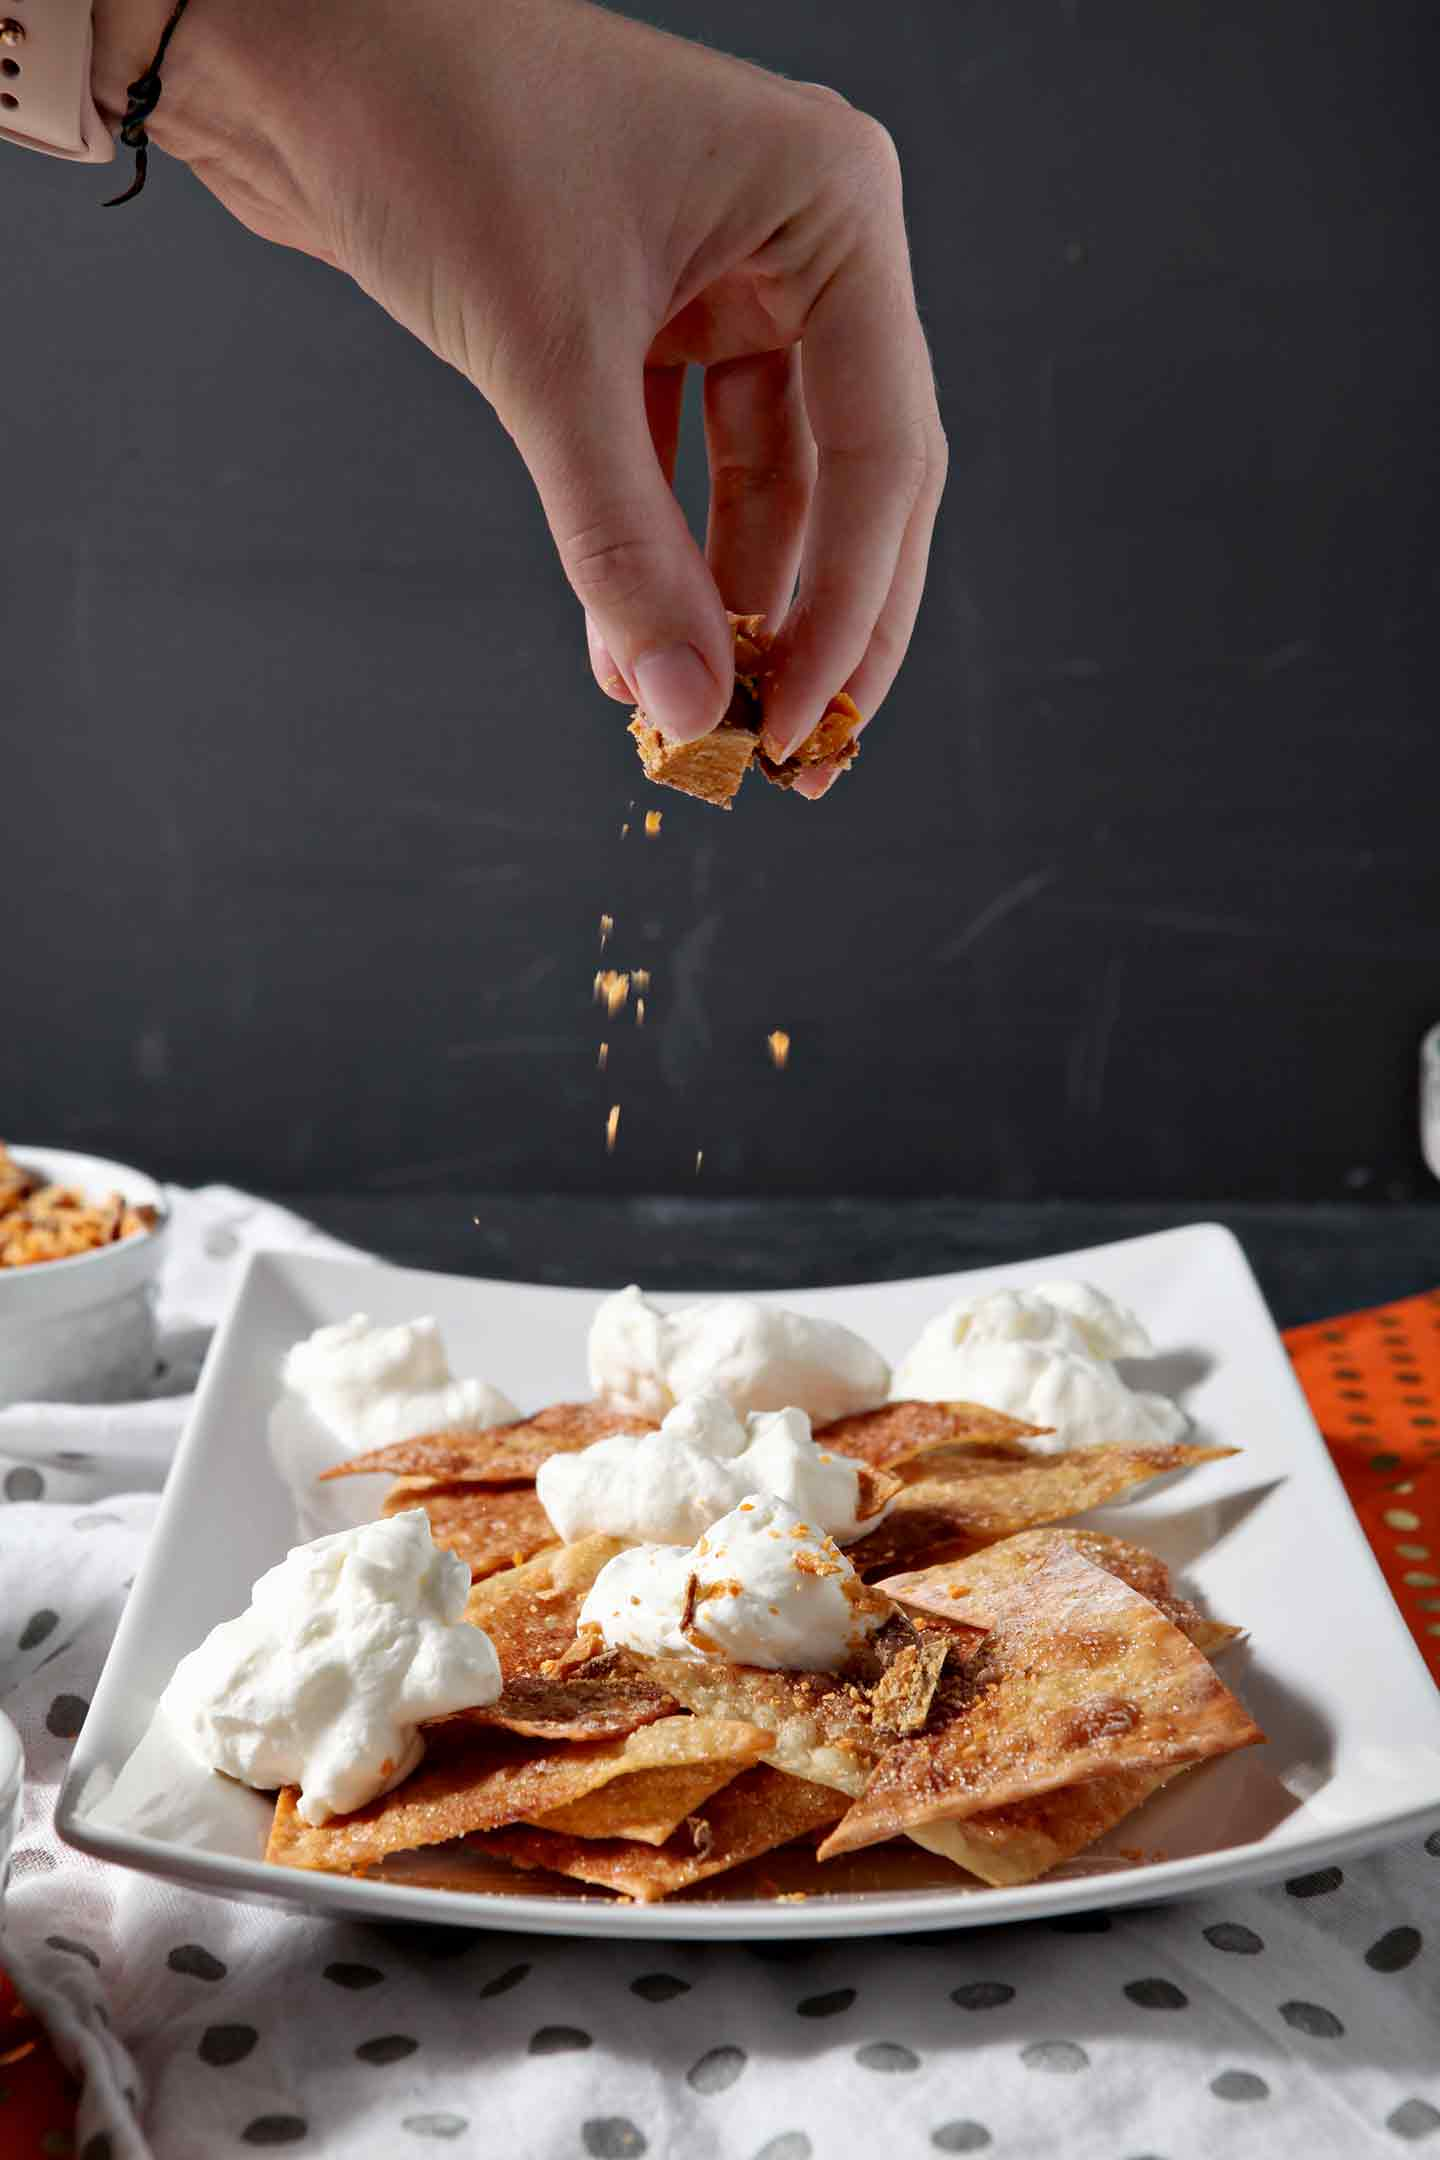 Butterfingers are sprinkled on top of a platter of crispy wontons with whipped cream before other toppings are added